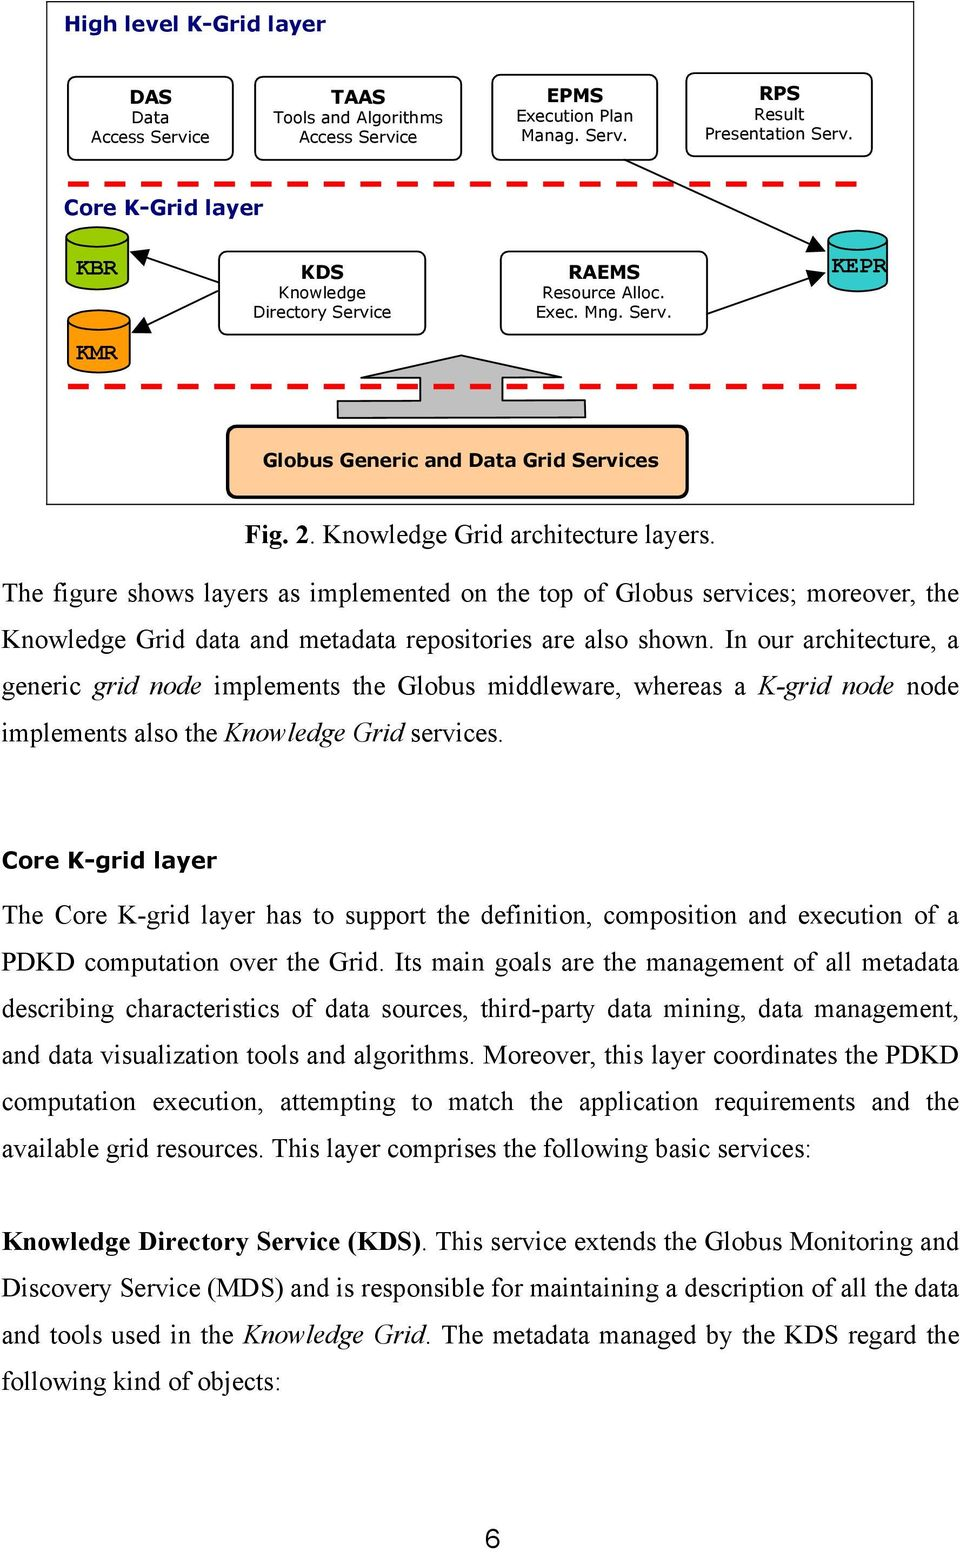 The figure shows layers as implemented on the top of Globus services; moreover, the Knowledge Grid data and metadata repositories are also shown.